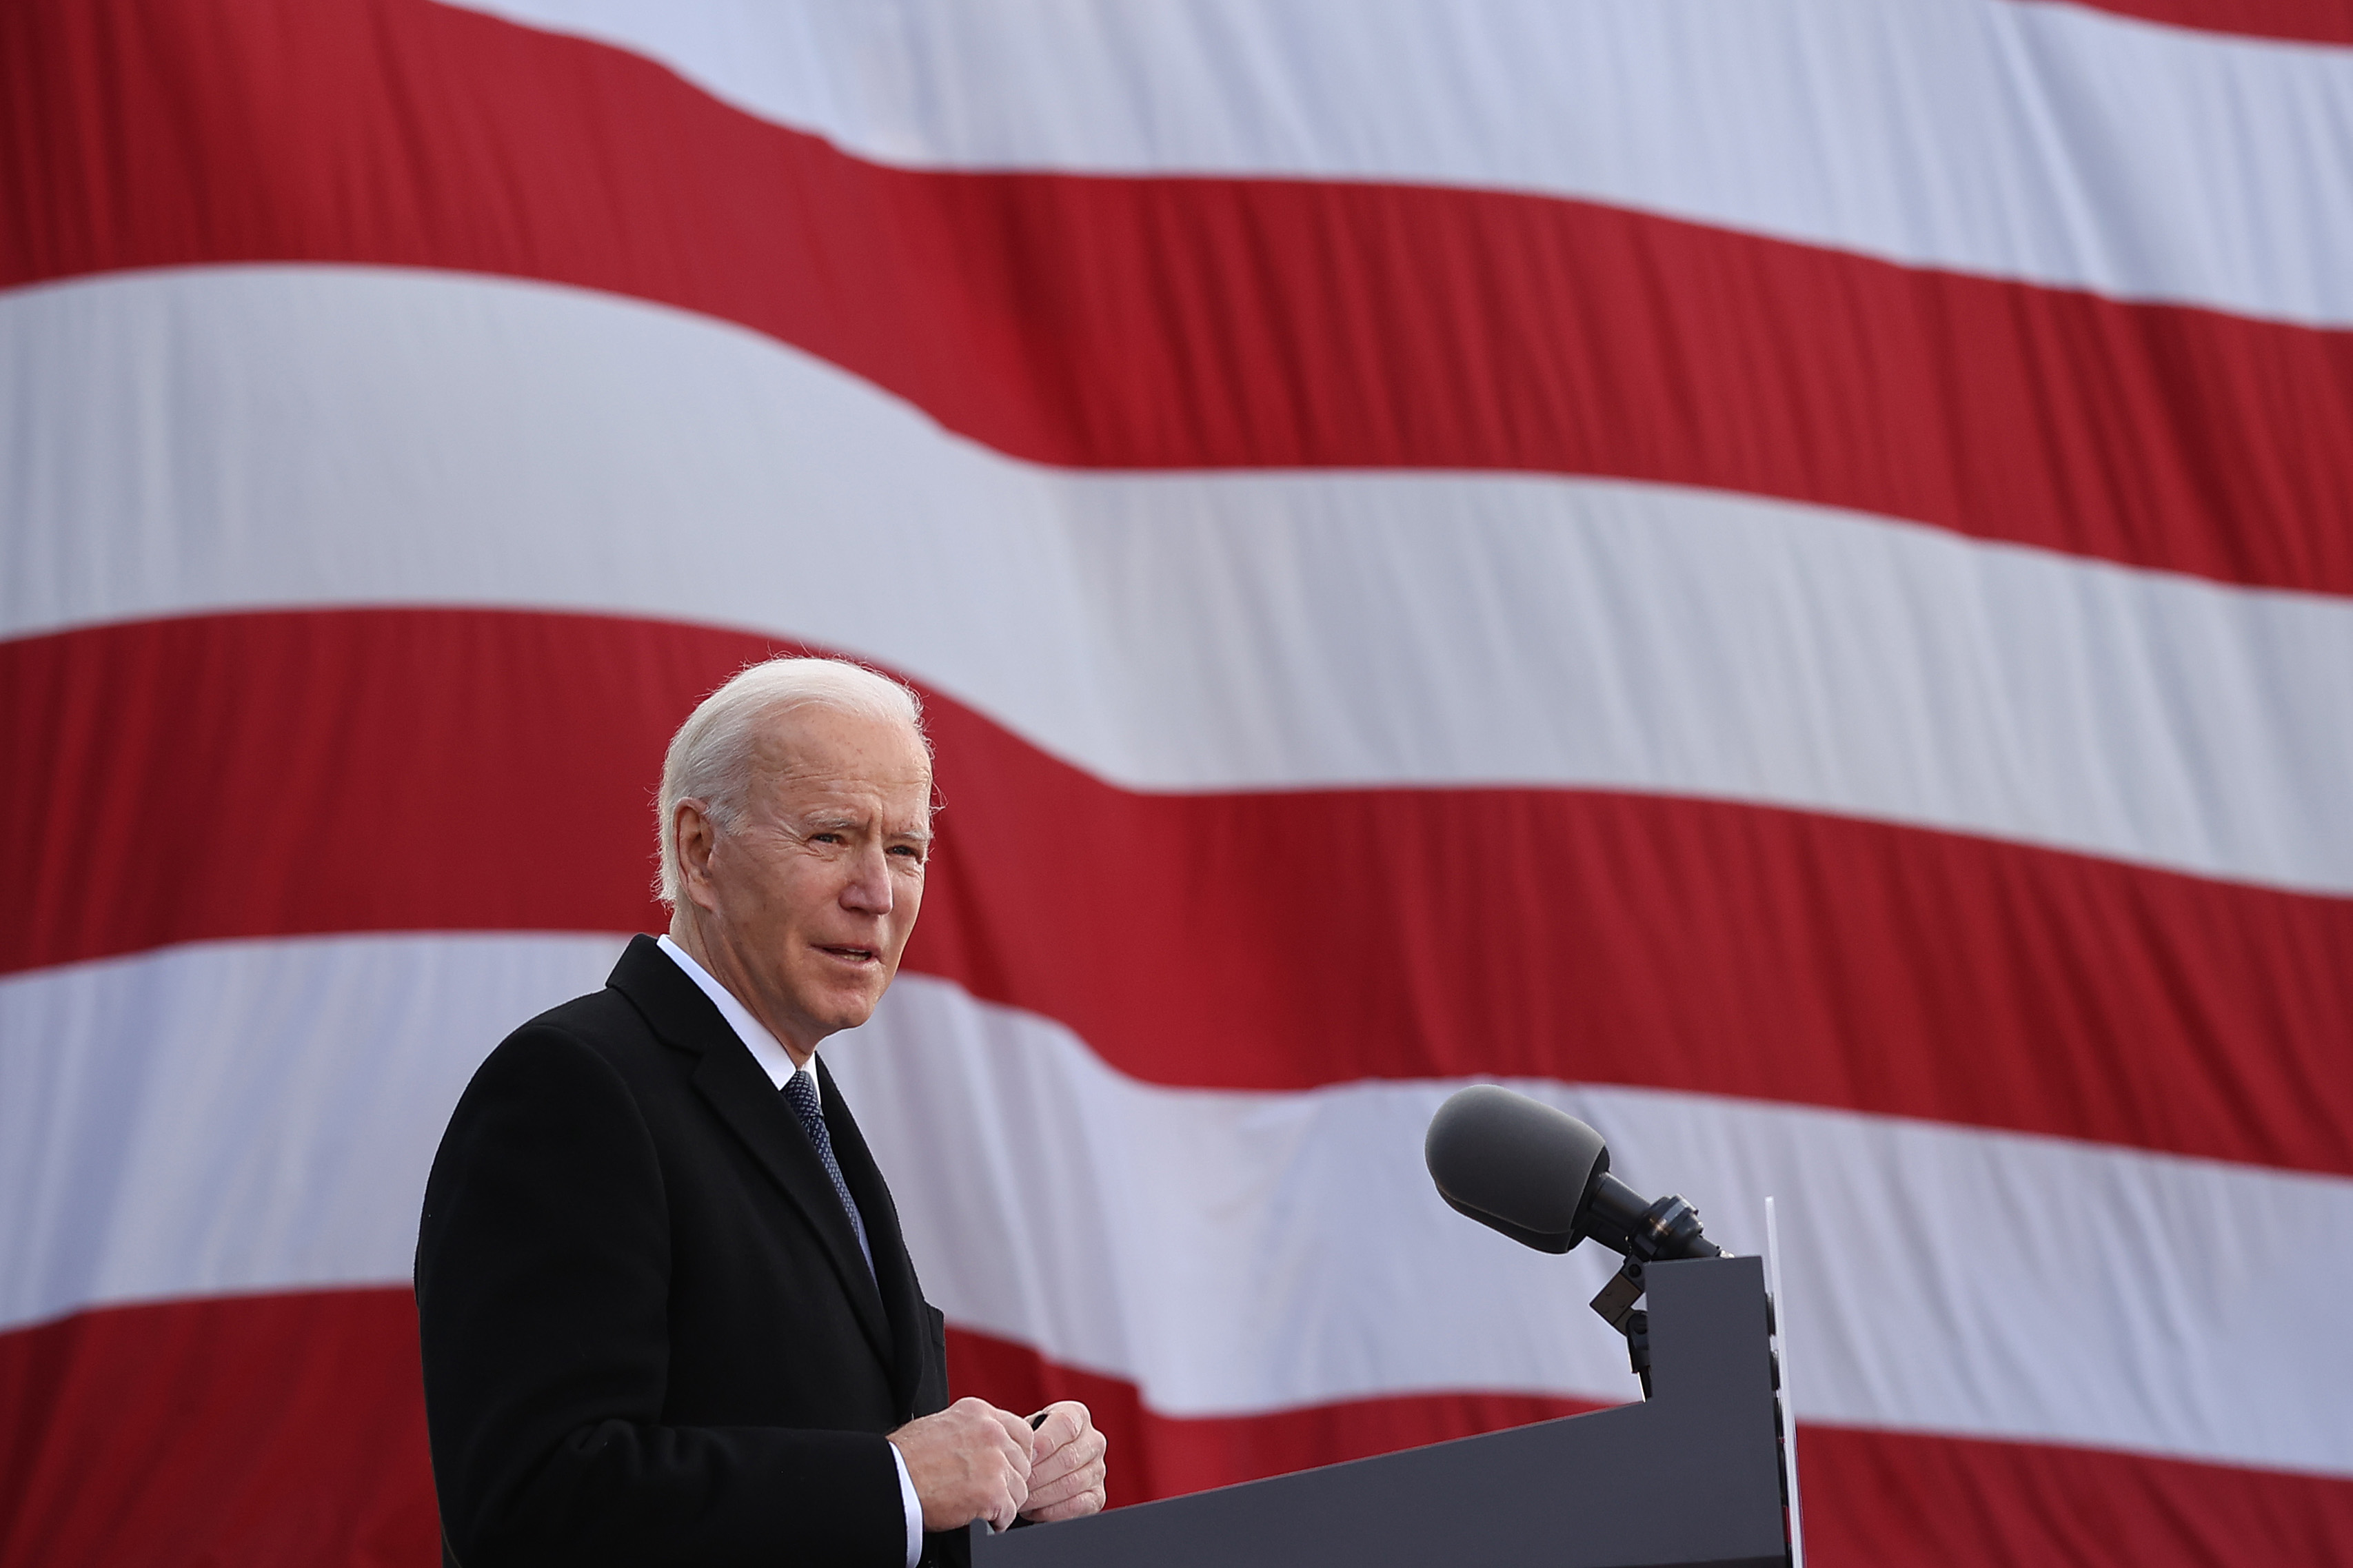 More Stimulus Checks Should Be Among Biden's Top Priorities, Nearly 80% of Americans Say